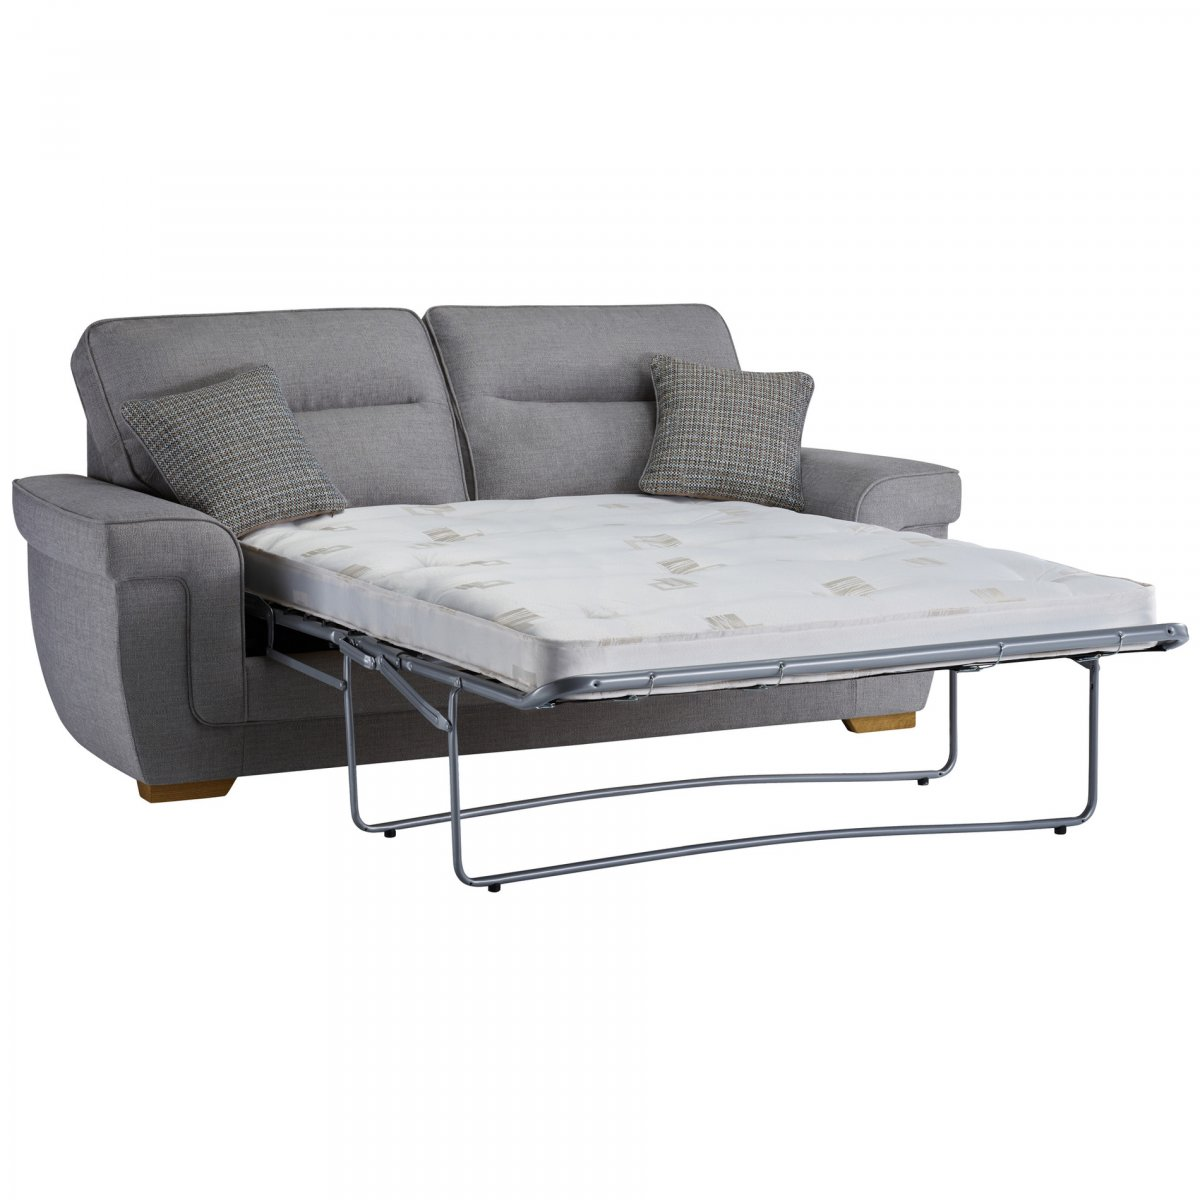 Kirby 3 seater sofa bed with deluxe mattress barley silver for Sofa bed extension